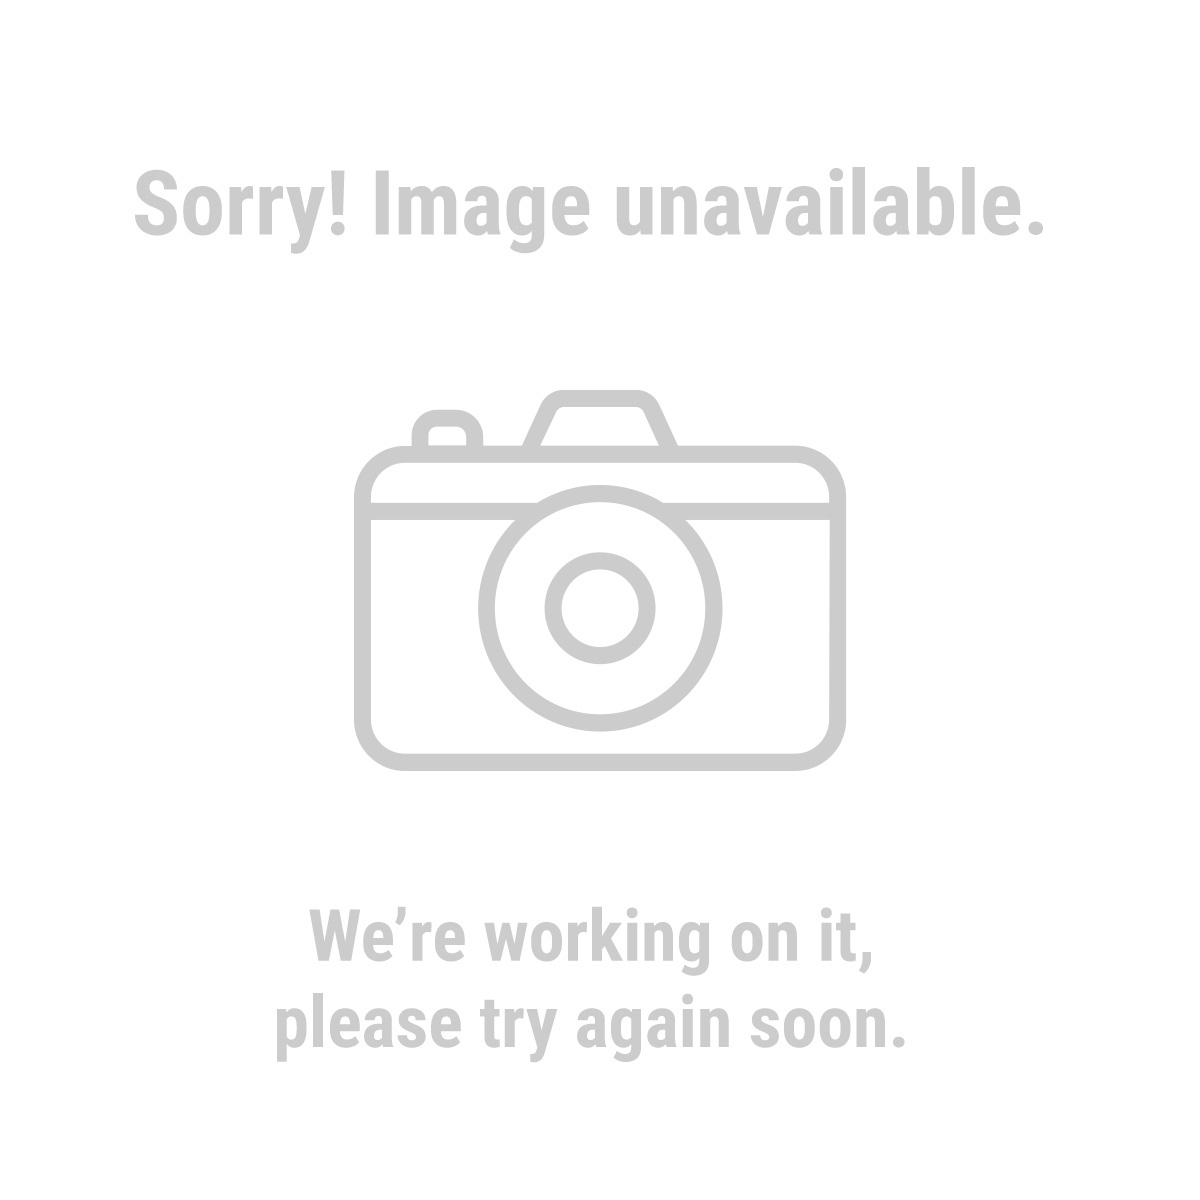 Gordon® 96551 33 Piece Deluxe Hobby Knife Set